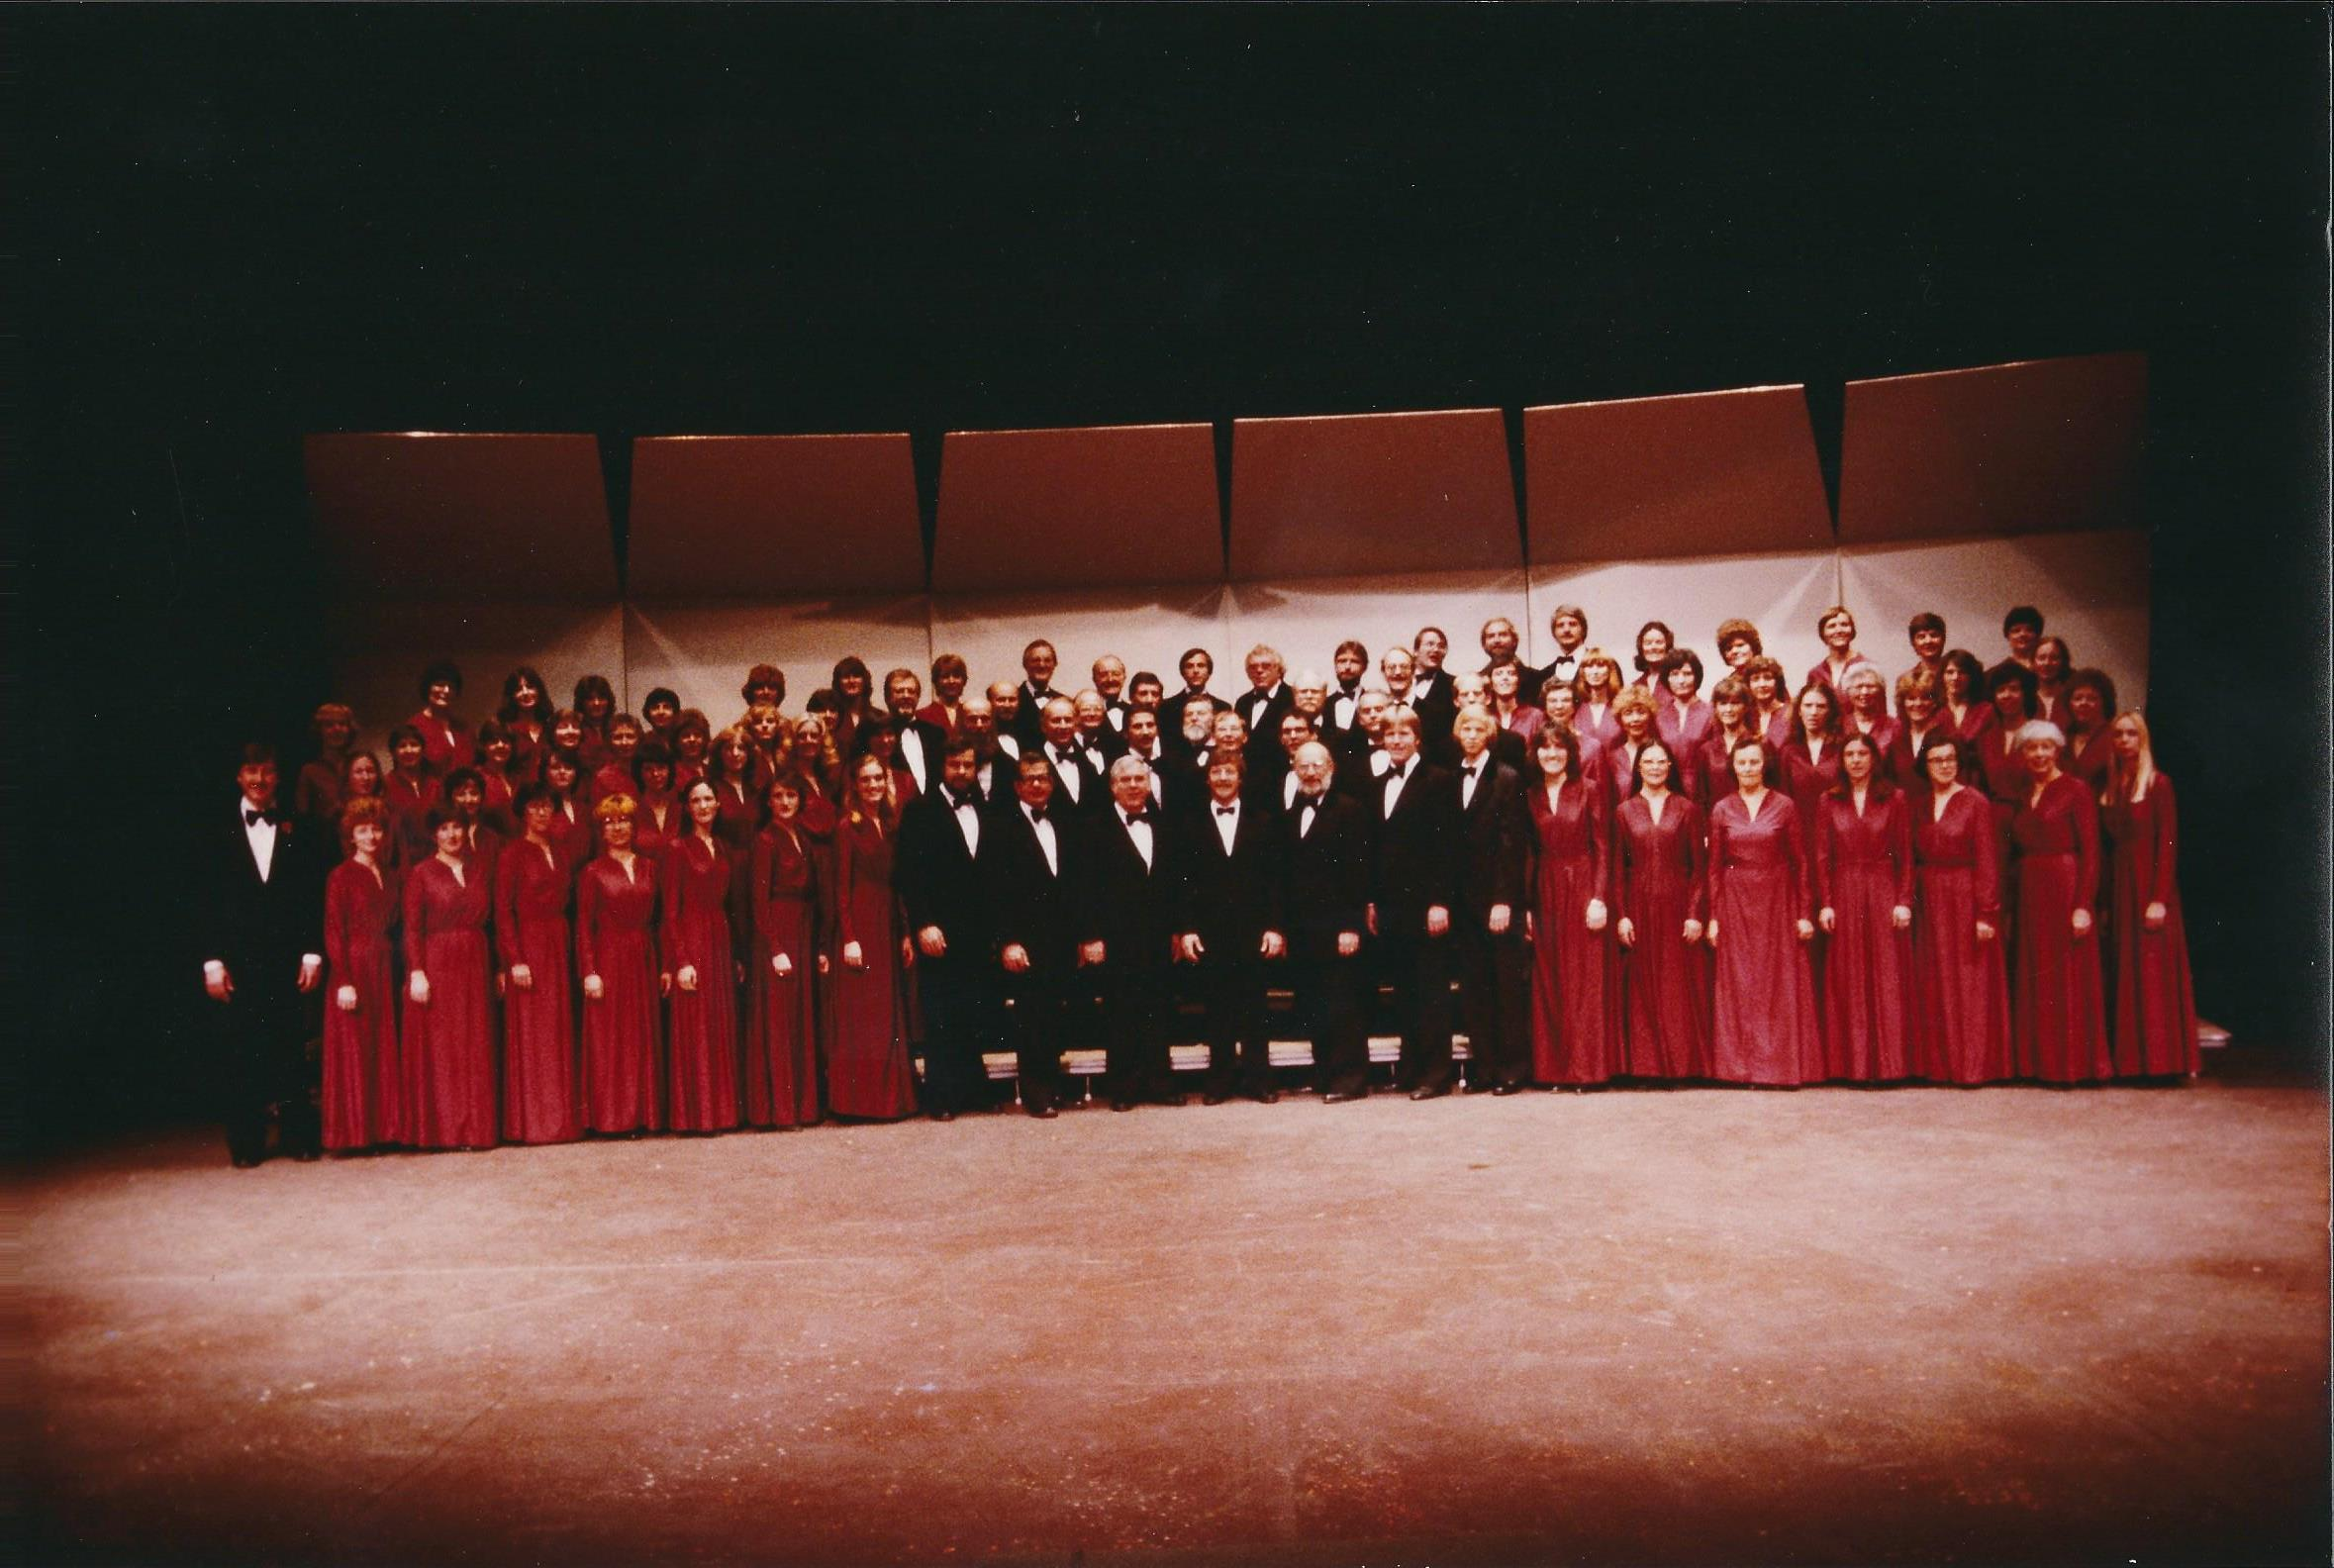 Pic #2 from the Chorale's past.